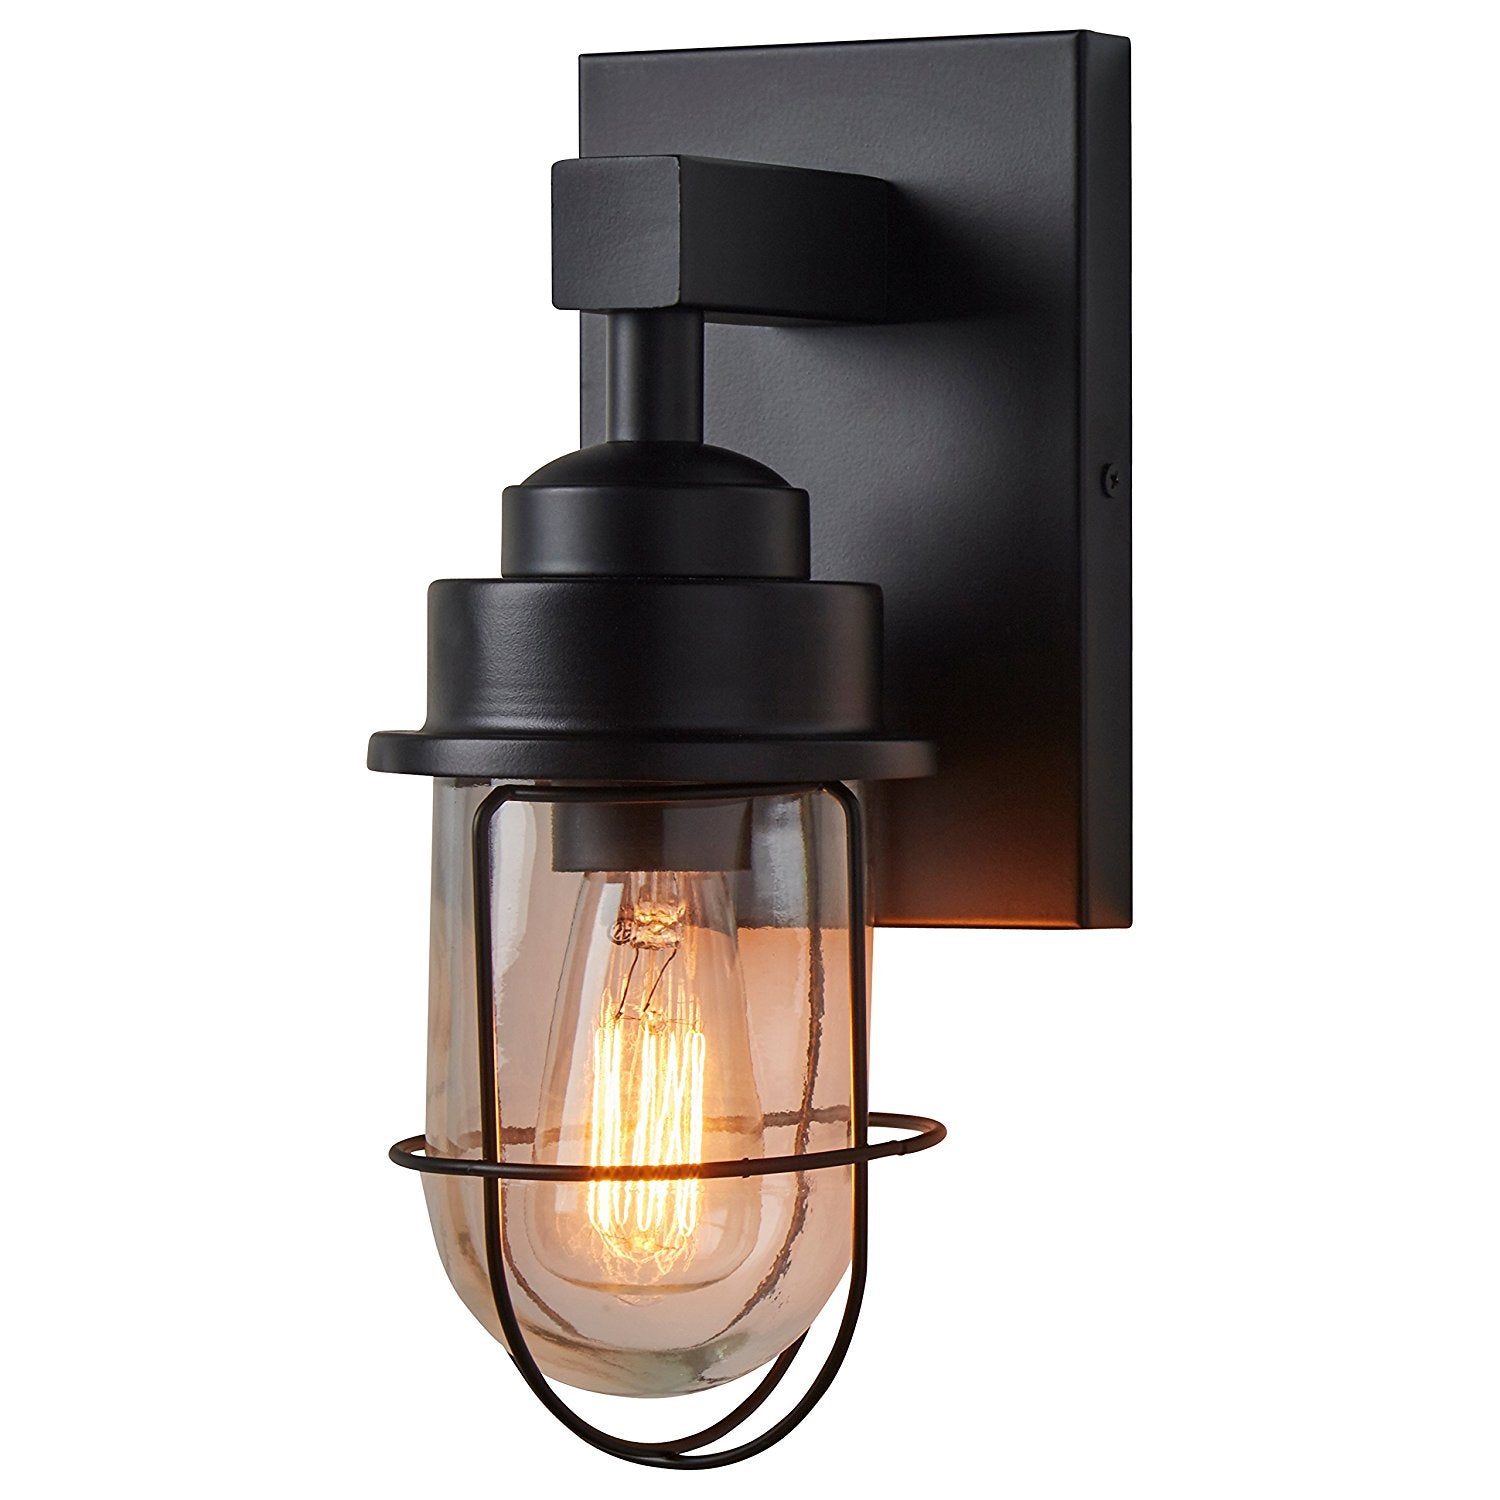 fixtures prominent lights light wall things inspire industrial home mount cute retro for design lighting photo outdoor wonderful sconce fixture ideas inspiring exterior